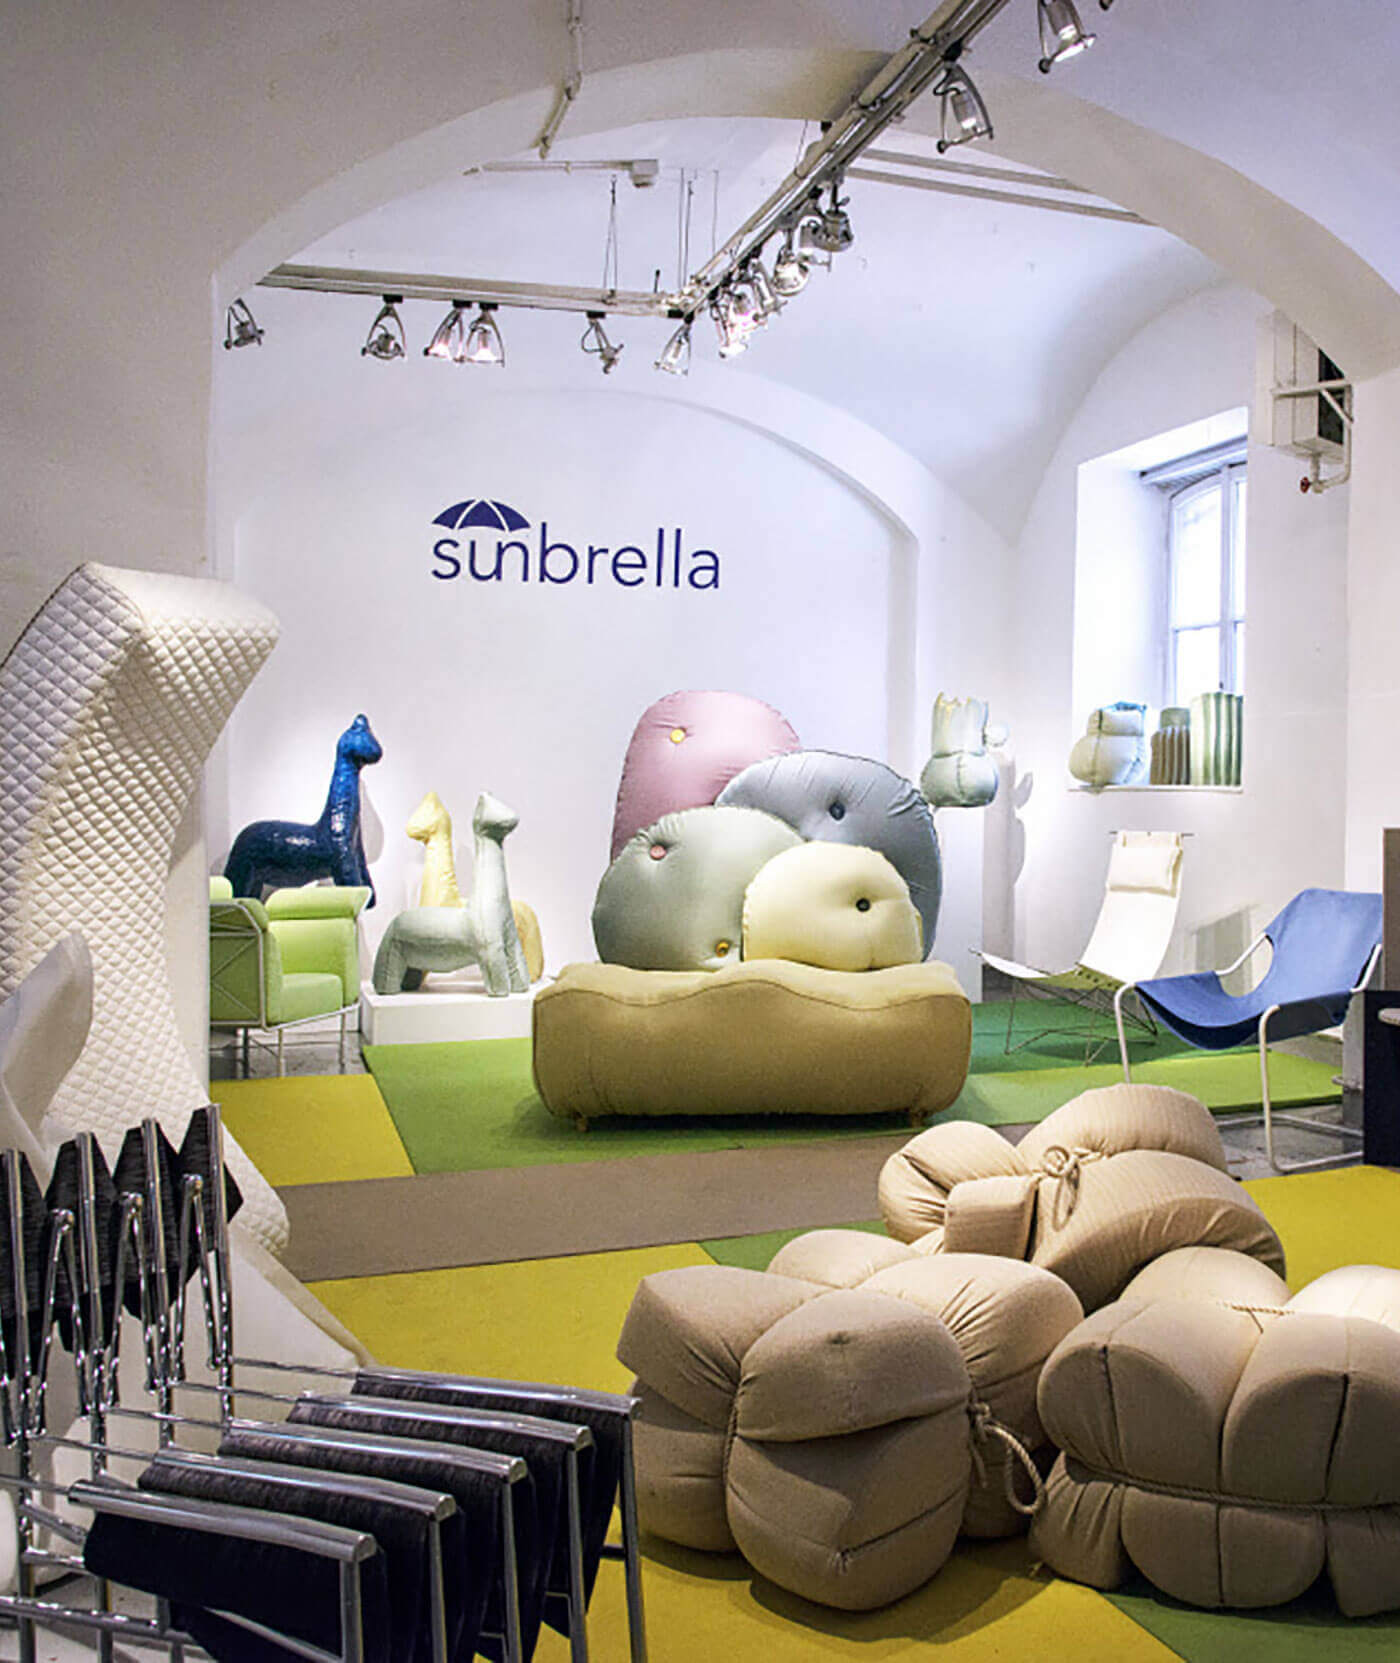 Pieces made out of Sunbrella fabrics at the Rosana Orlandi Gallery in Milan, Italy